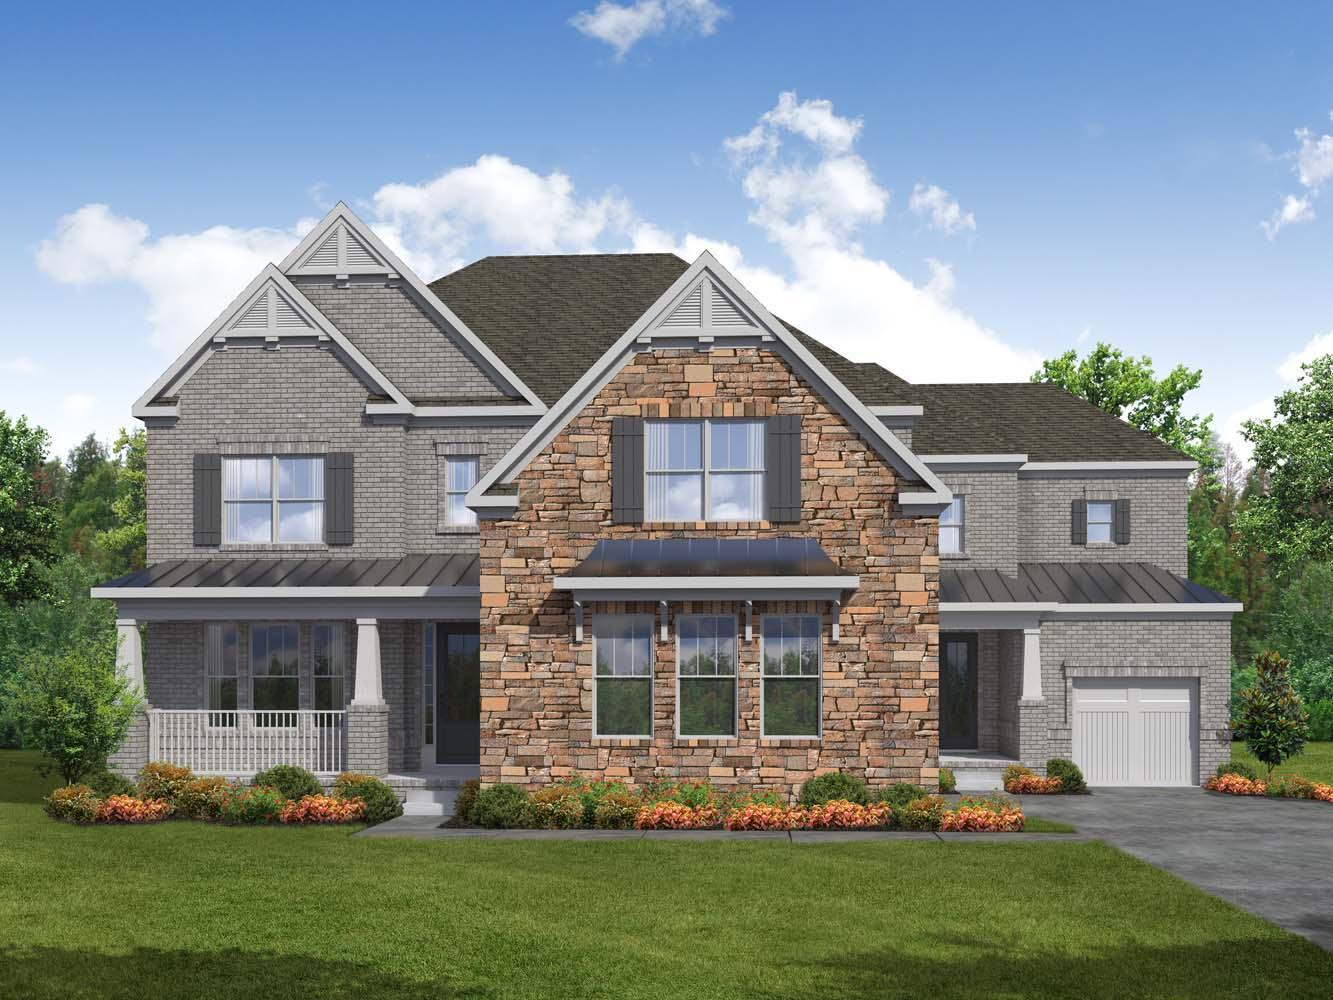 The Sherwood by Chafin Communities